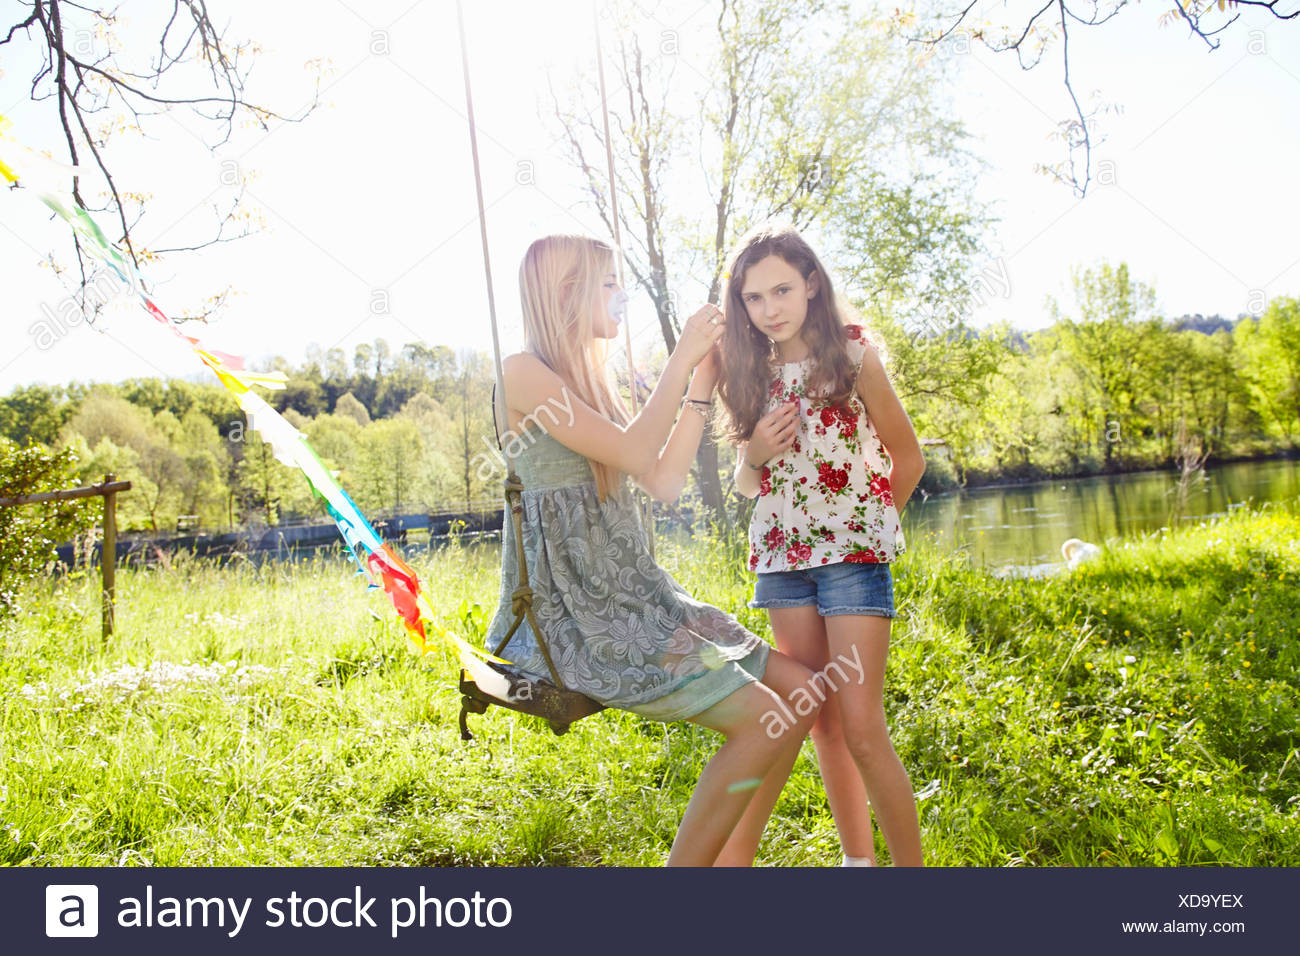 Young woman on swing with friend - Stock Image